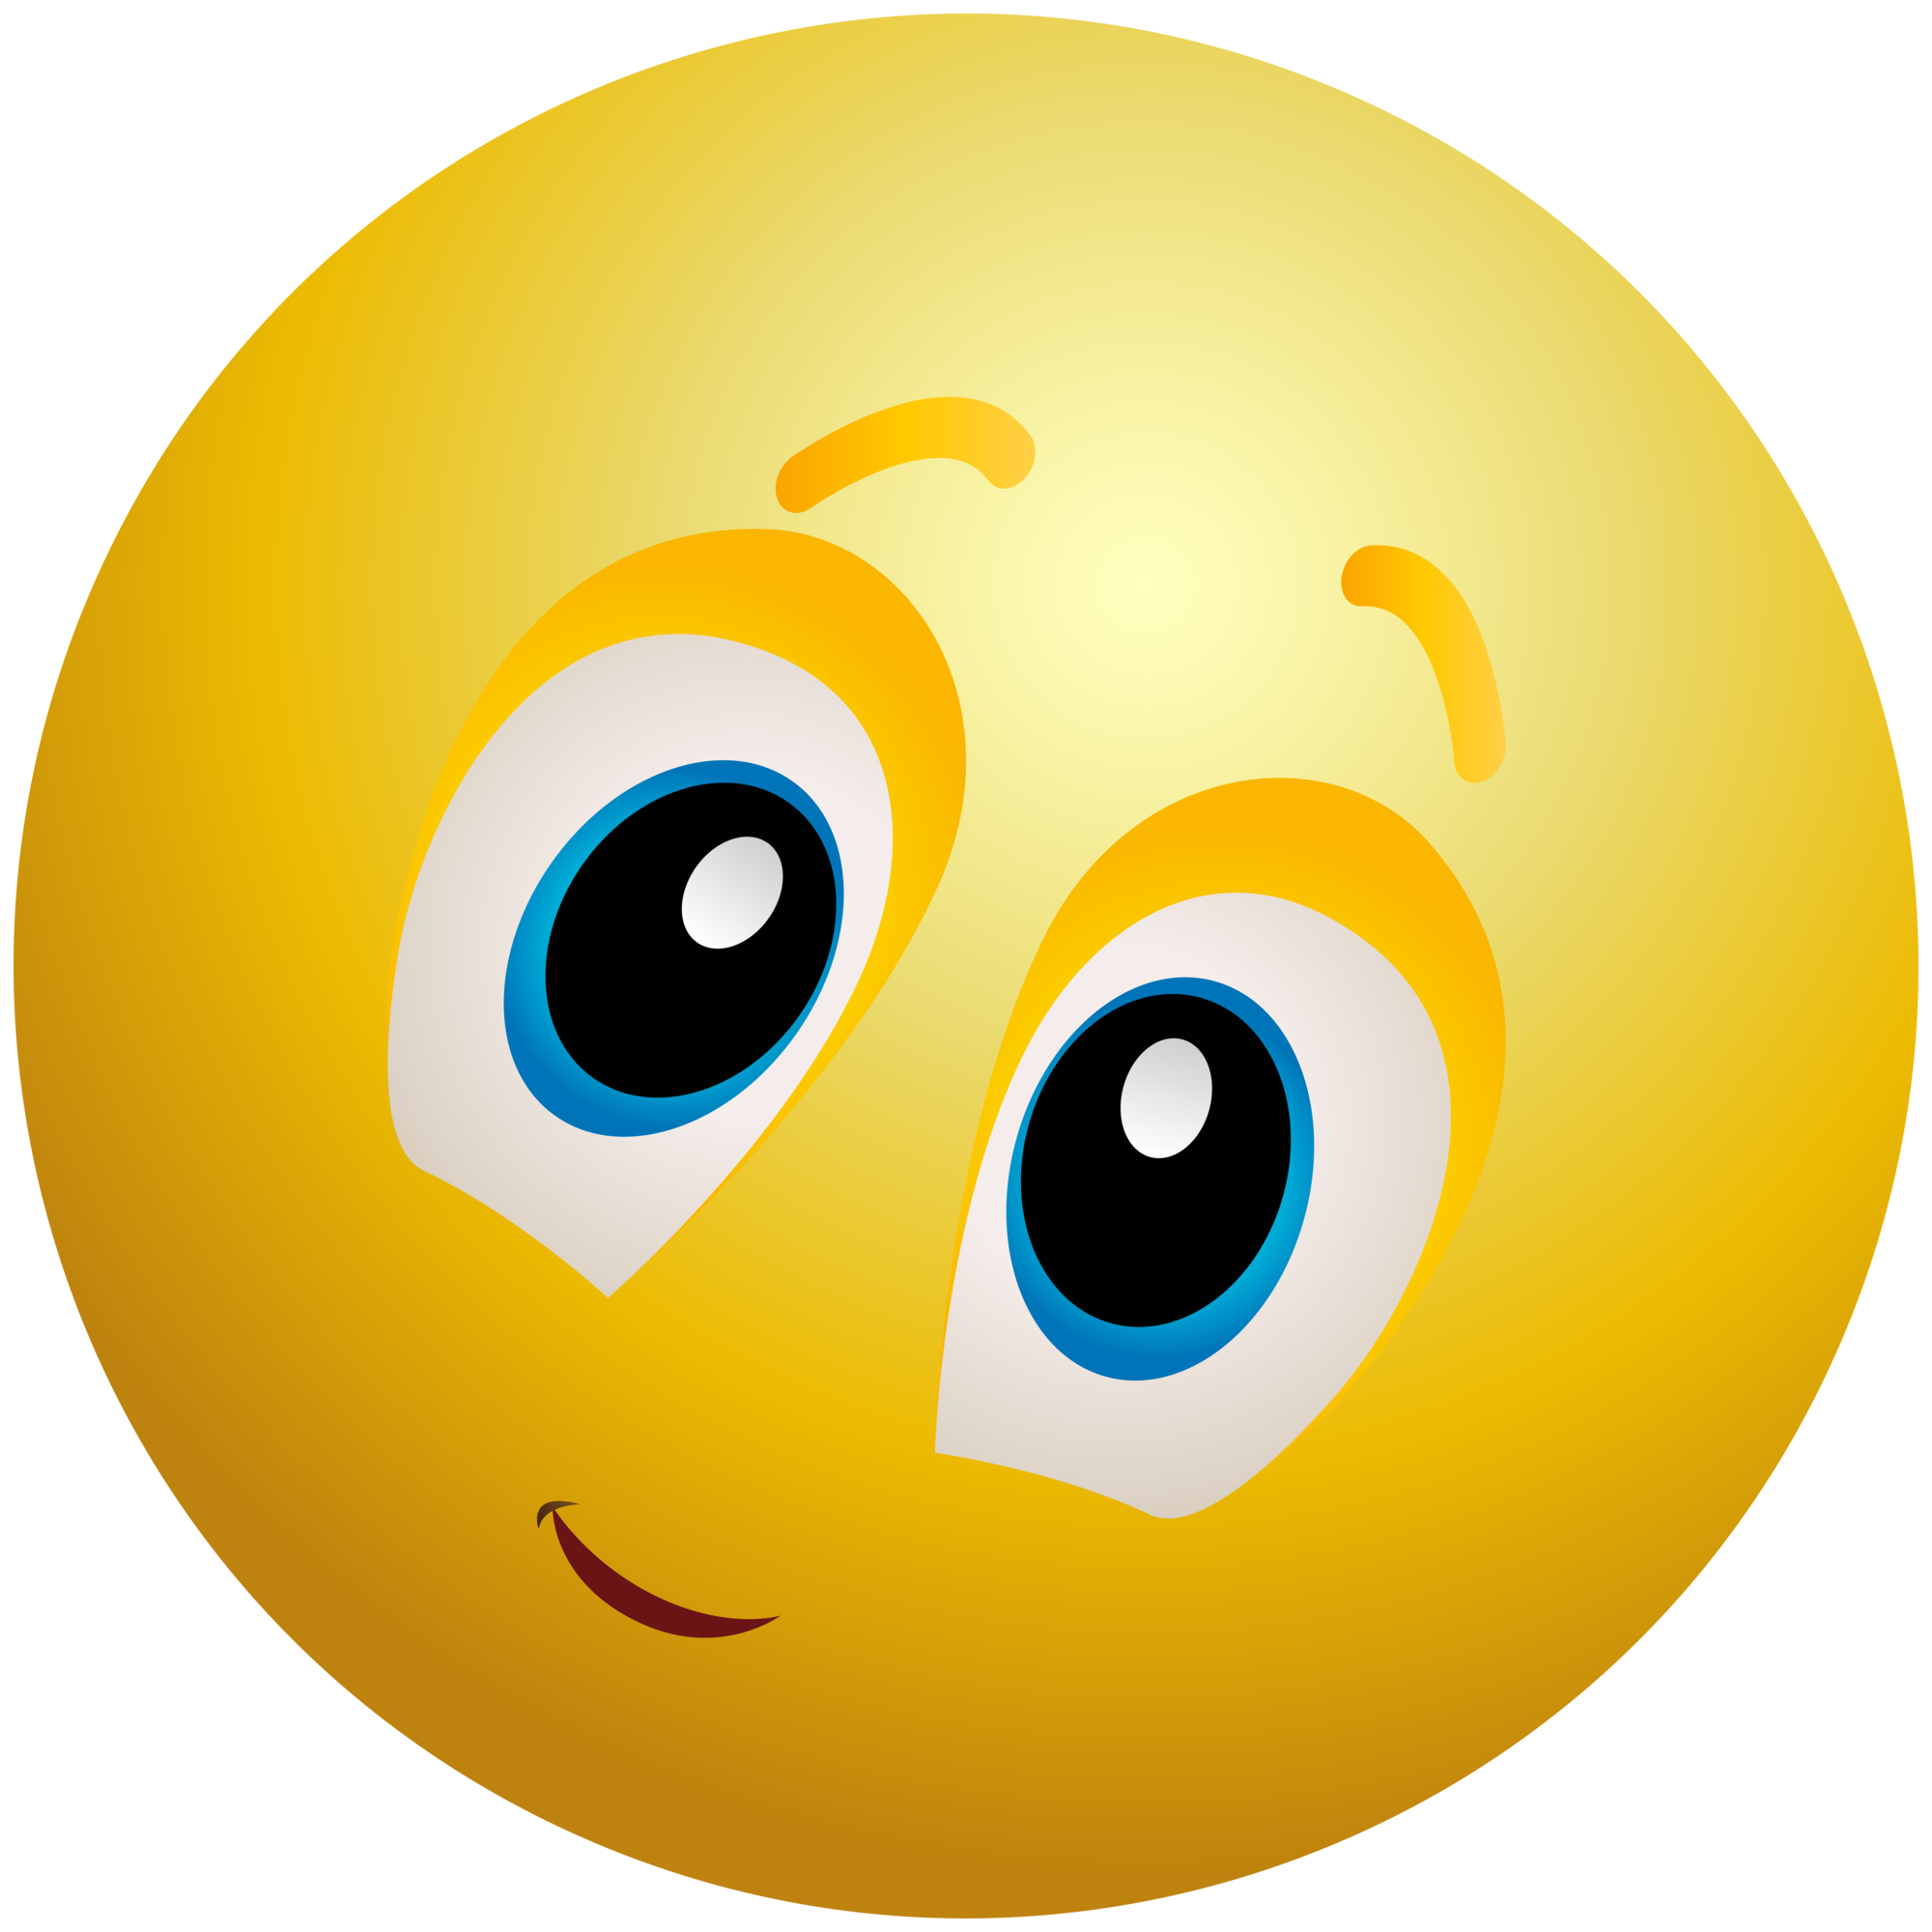 Emoji clipart. Kindly face emoticon info